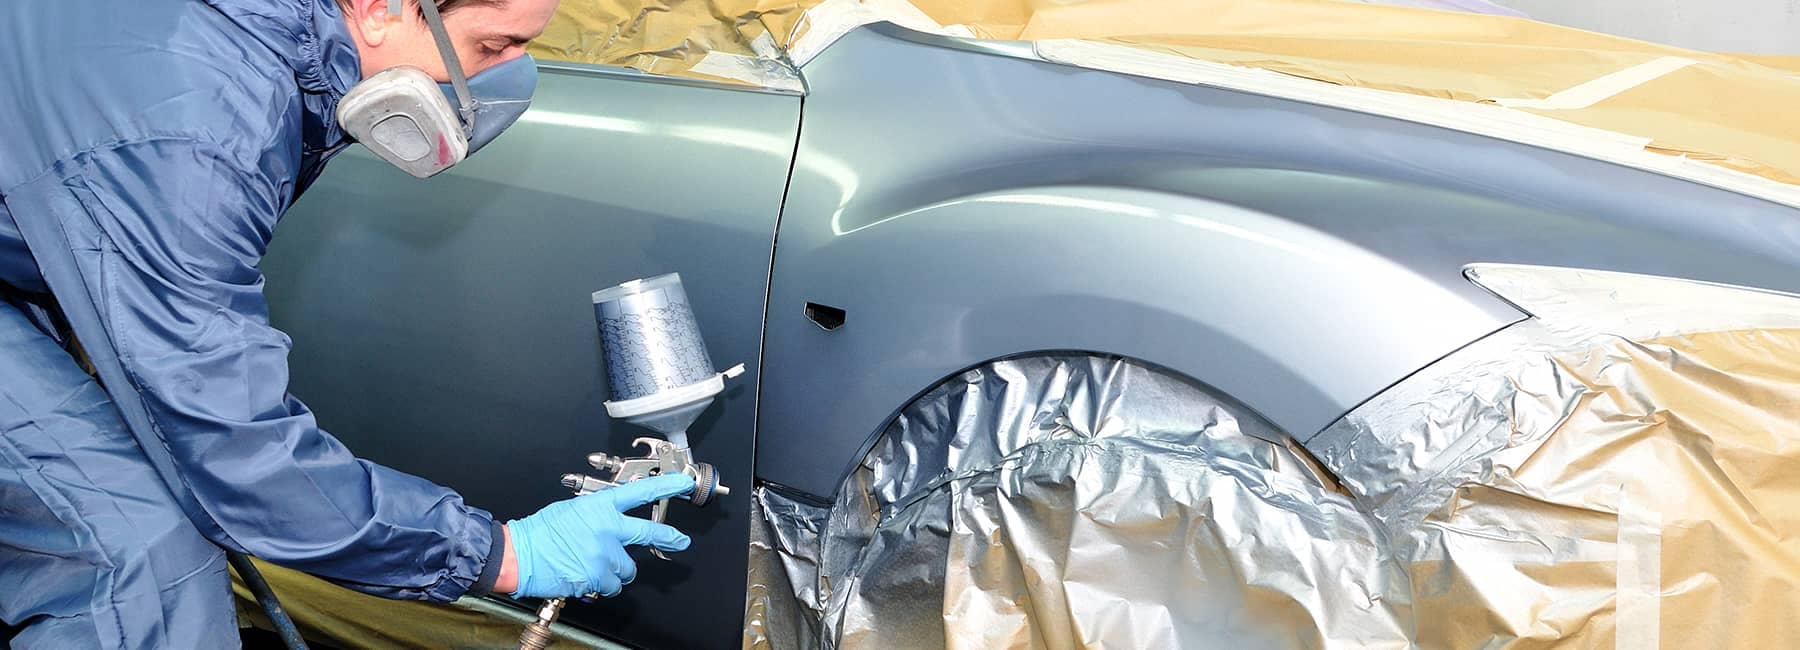 technician spraying car body